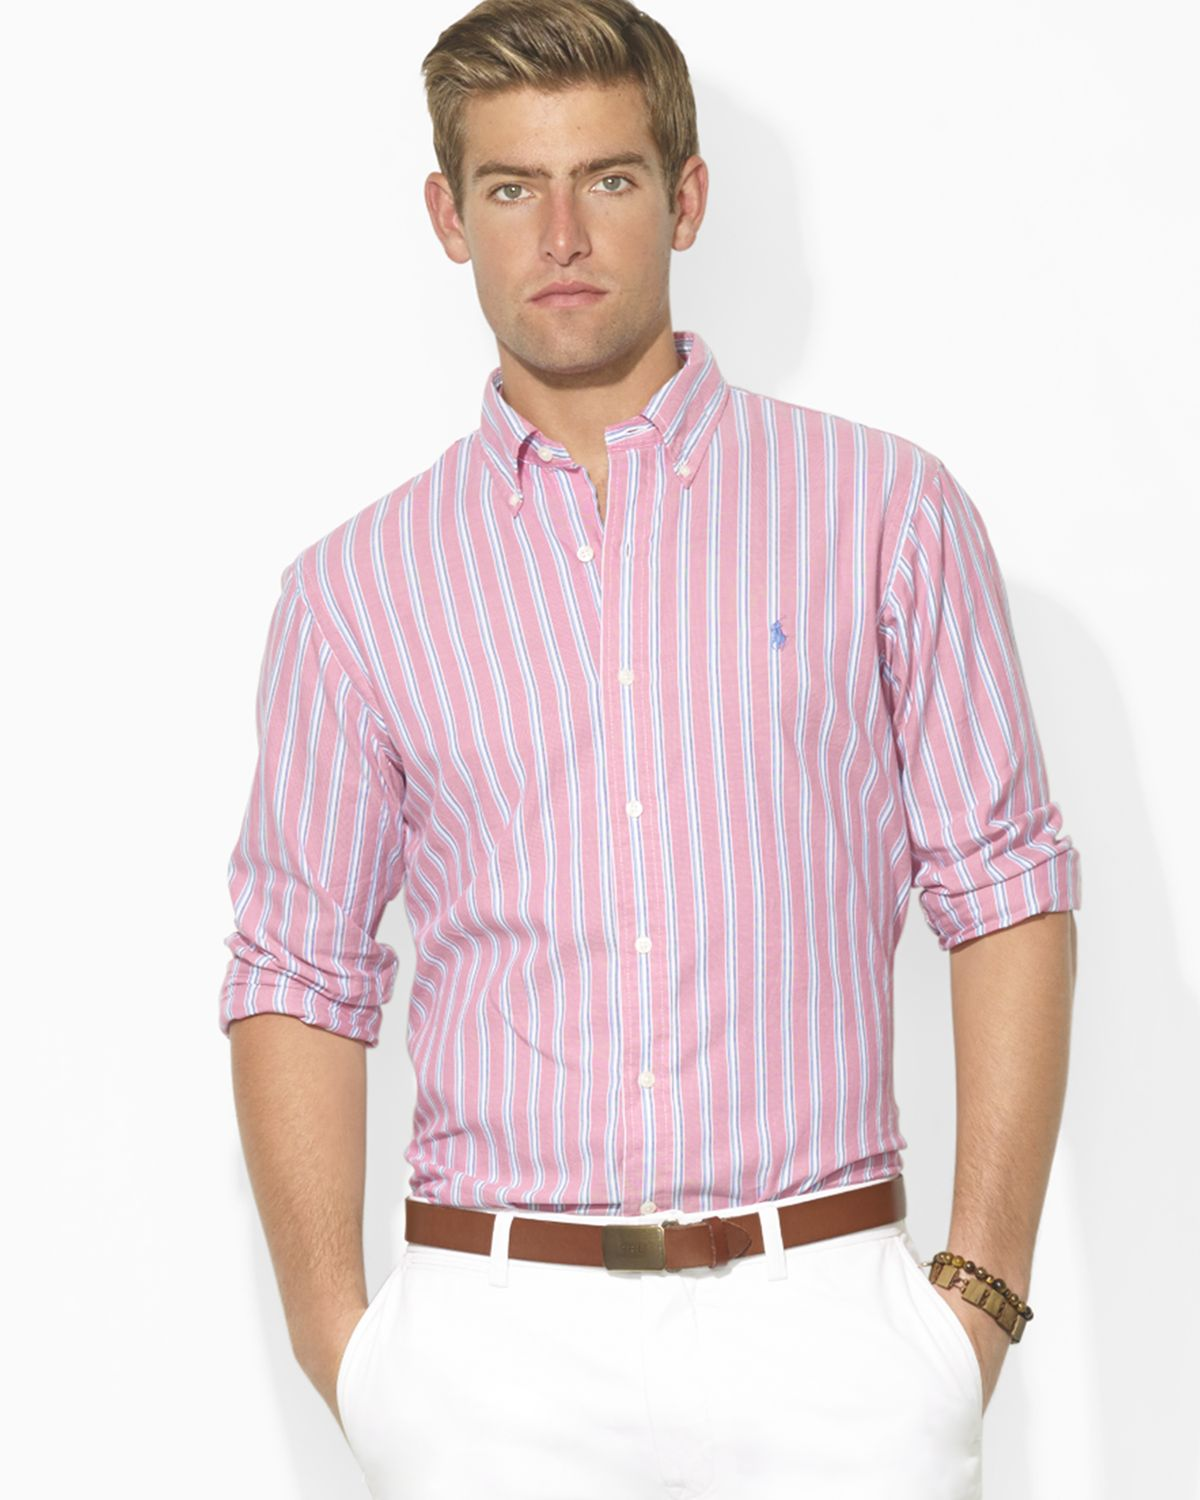 Lyst - Ralph lauren Polo Custom-fit Striped Oxford Sport Shirt in ...